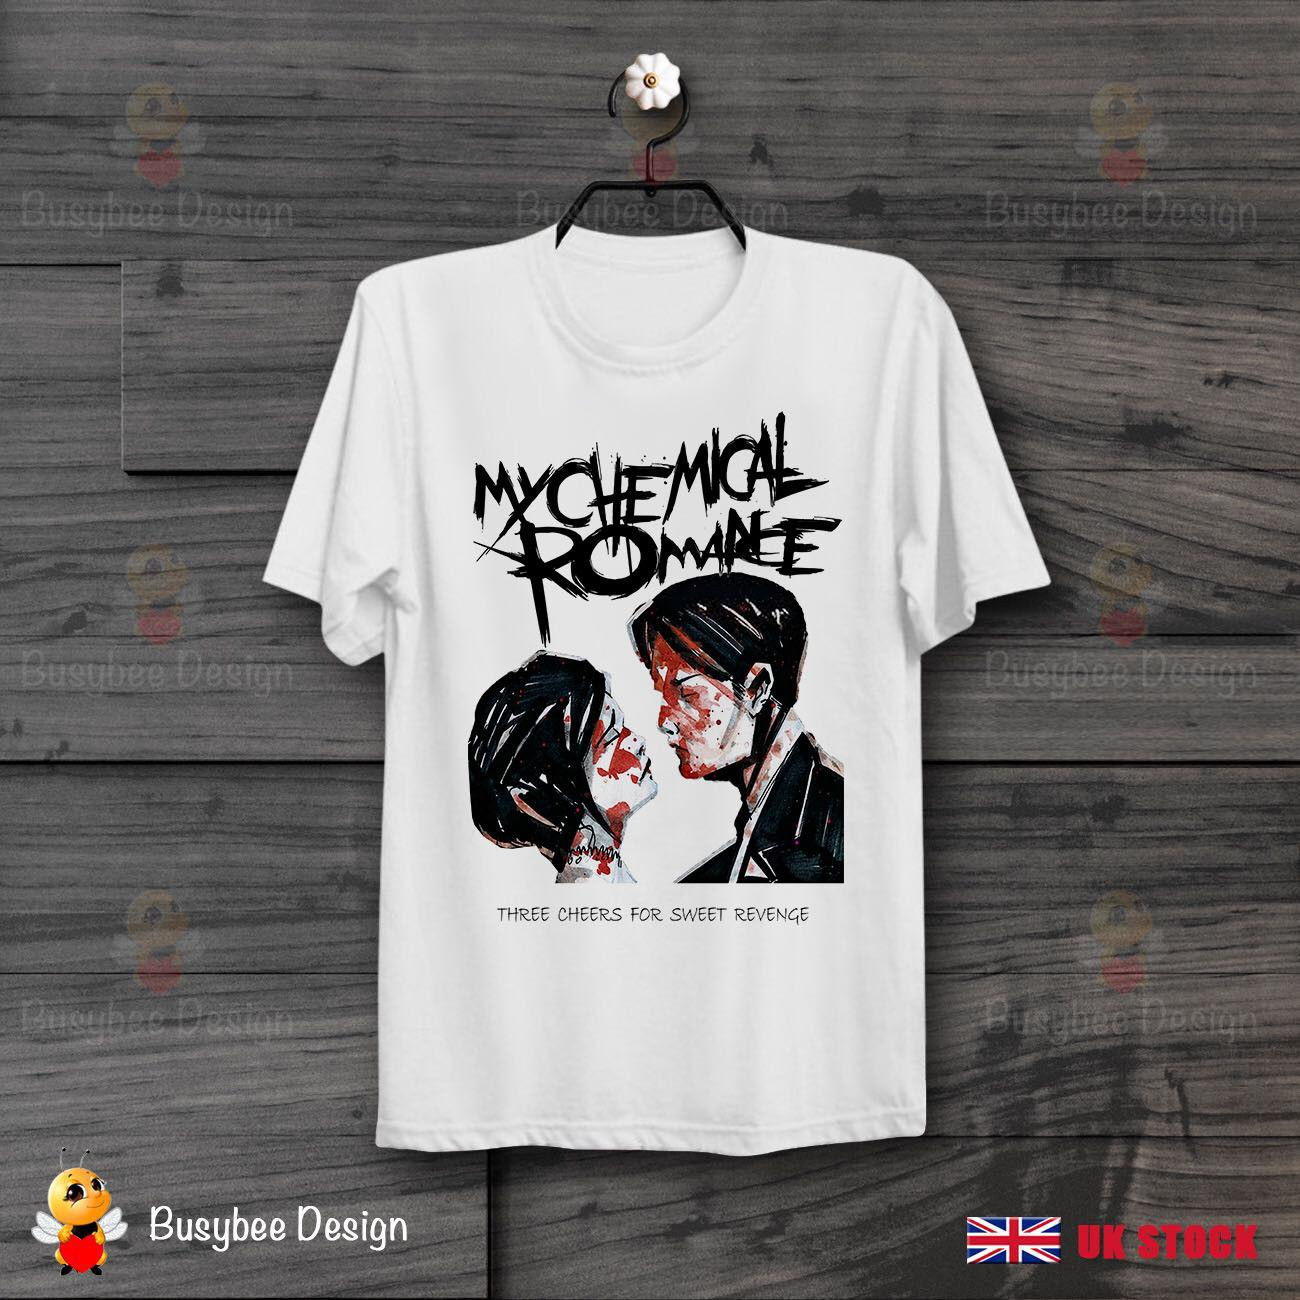 85c18944 My Chemical Romance Three Cheers For Sweet Revenge Cool Unisex T Shirt  B386size Discout Hot New Tshirt Cool Tee Shirts Designs Web T Shirts From  Eightcup, ...